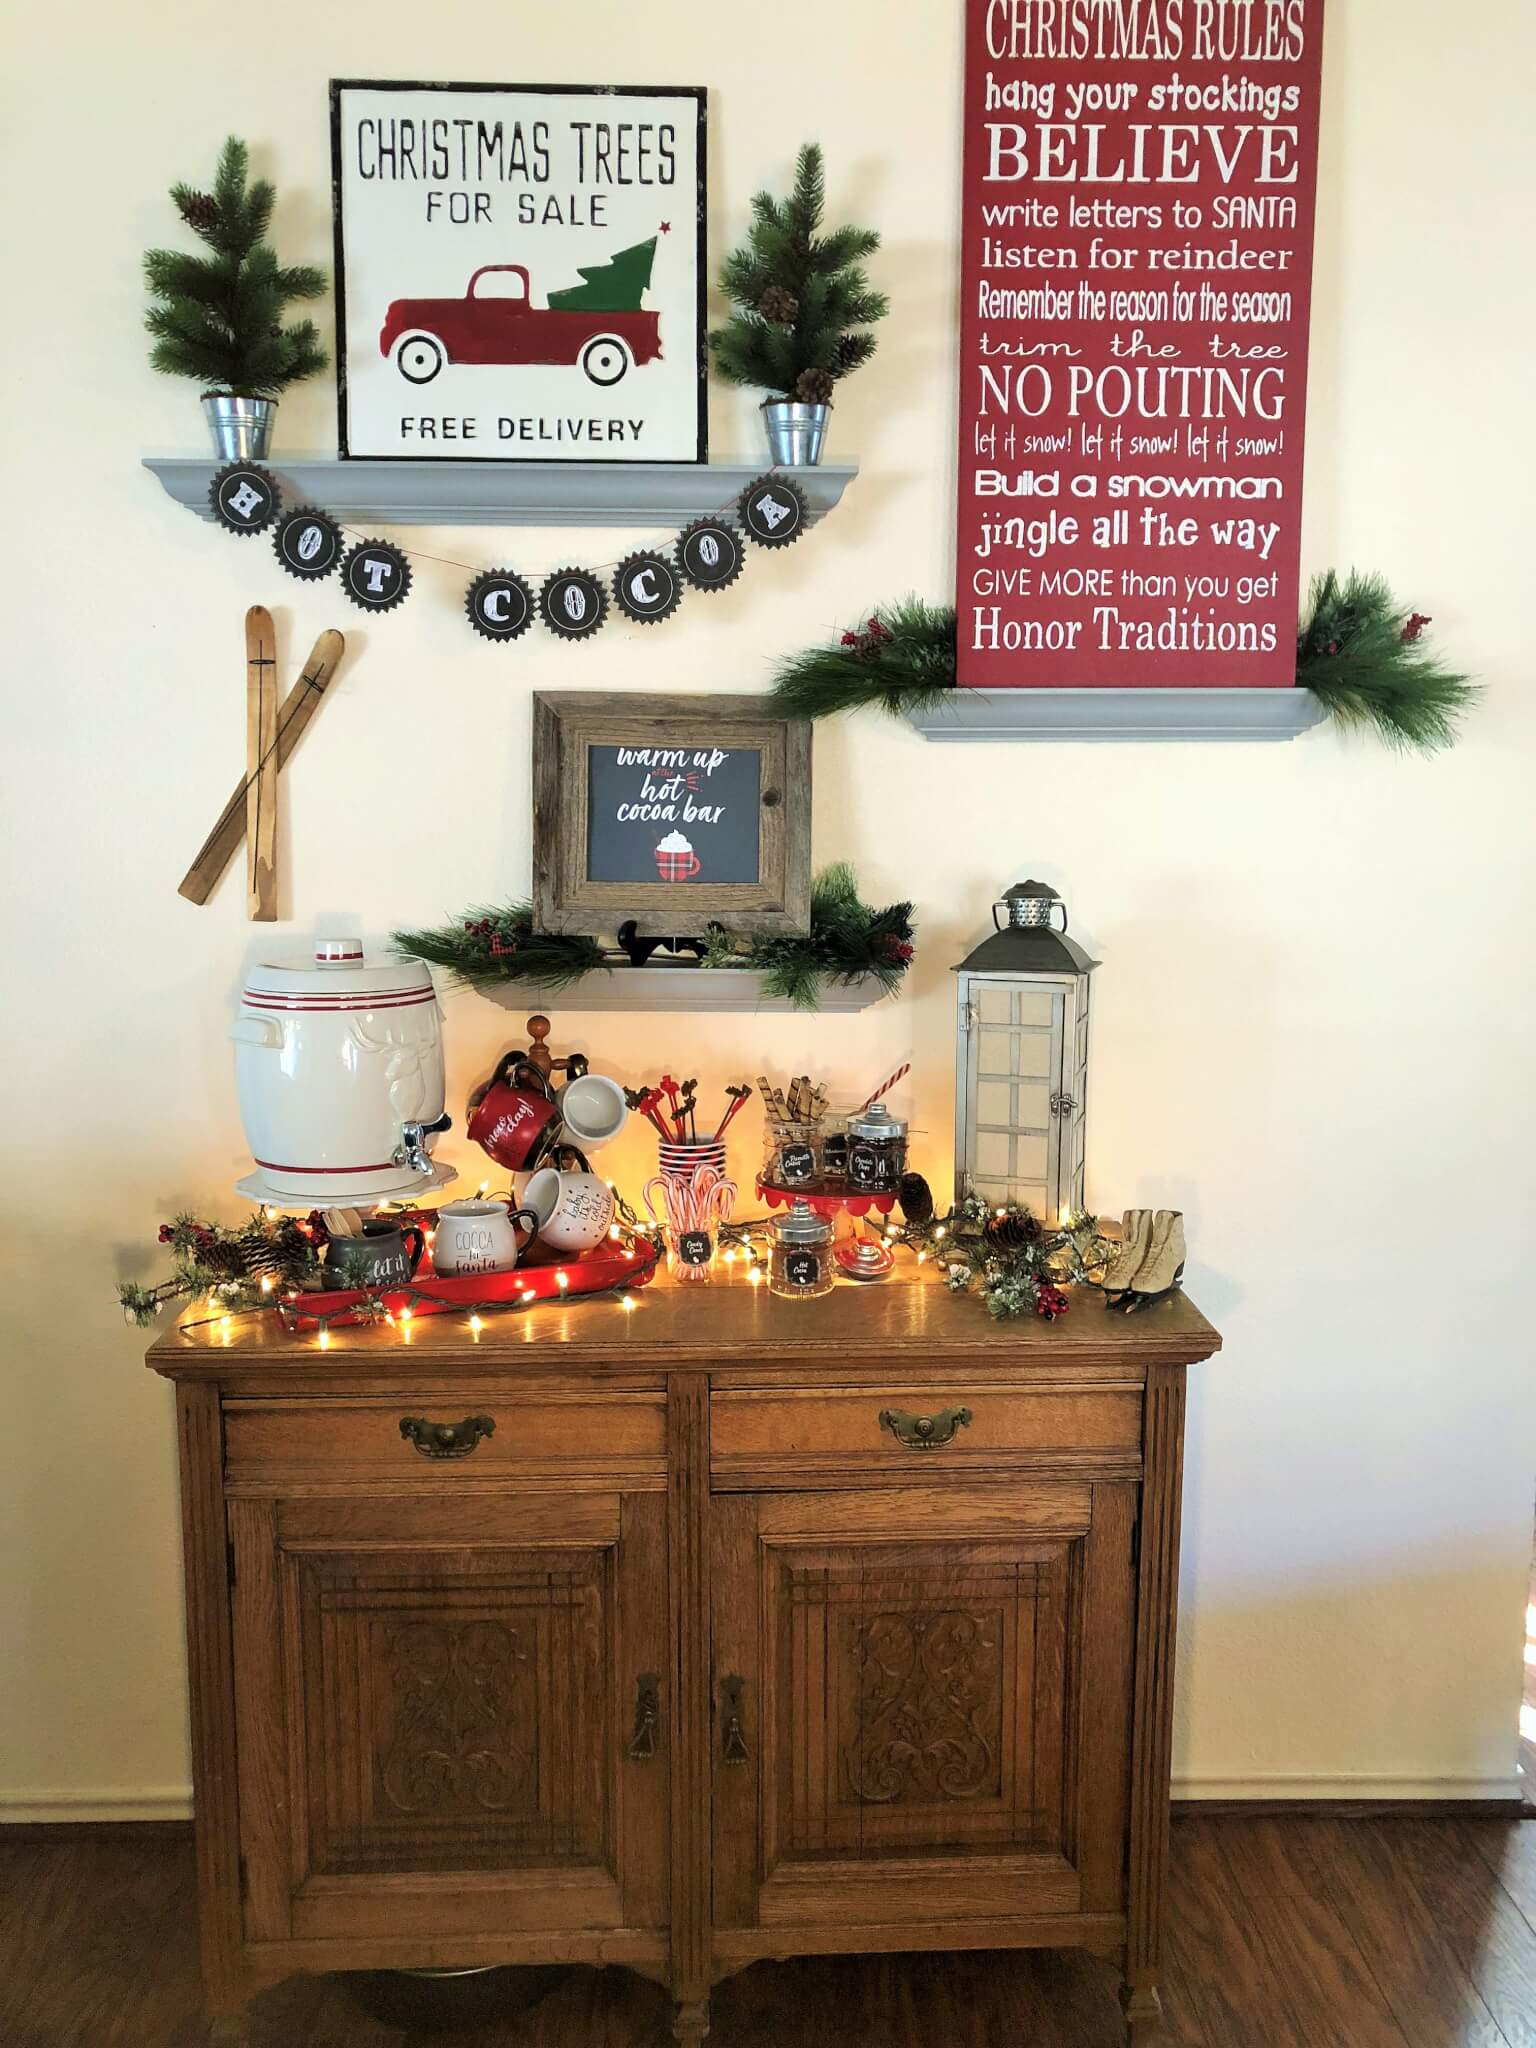 Hot cocoa bar station with free hot cocoa bar sign and topping tags